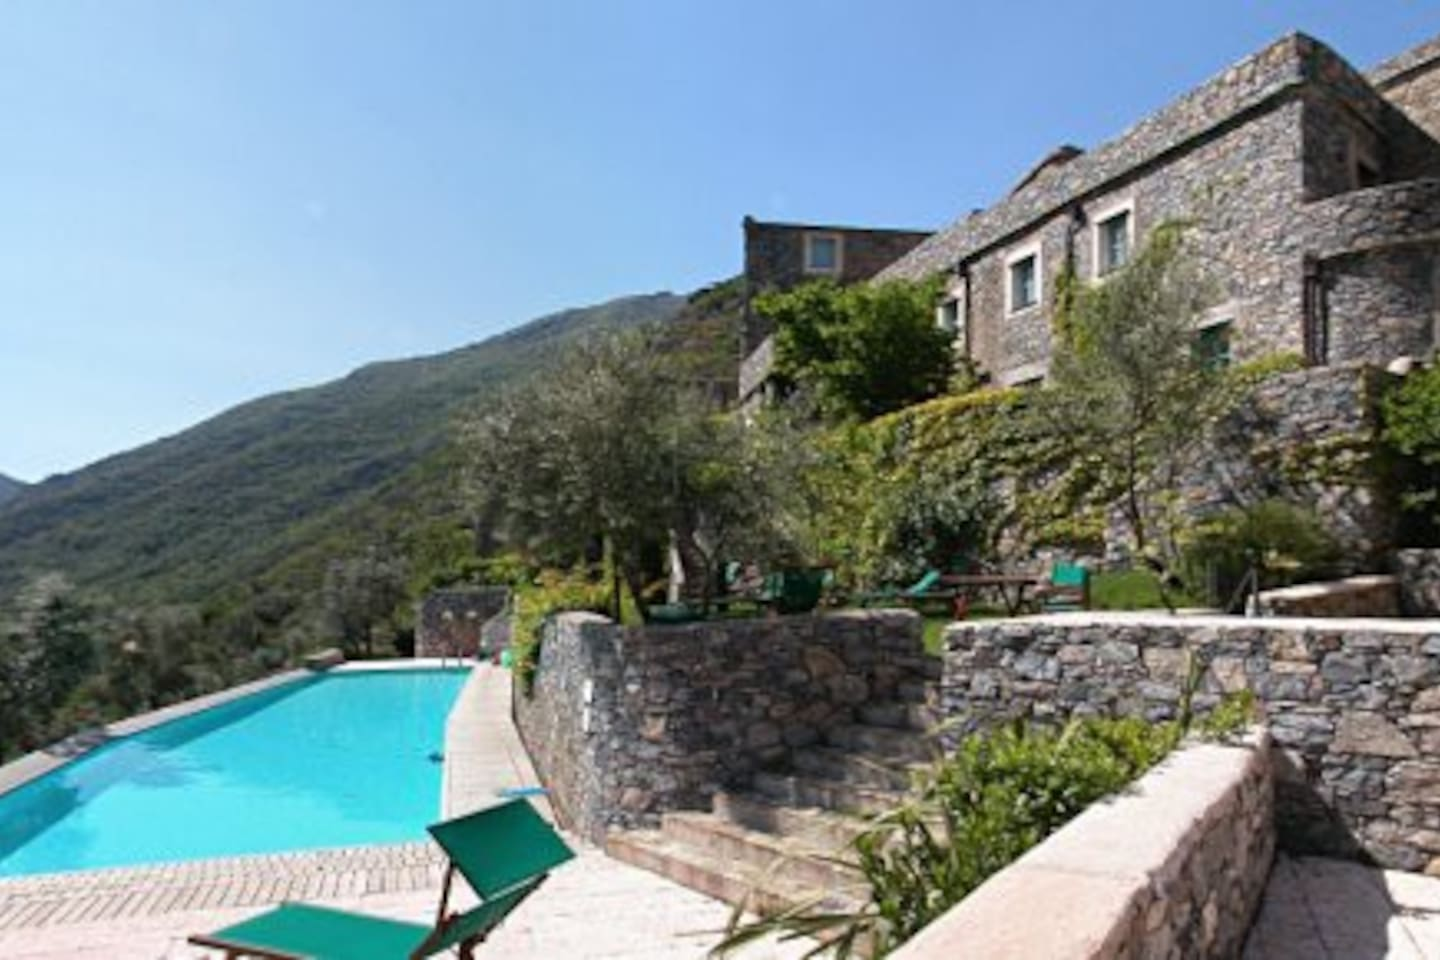 Pool with views stretching up and down the unspoilt valley